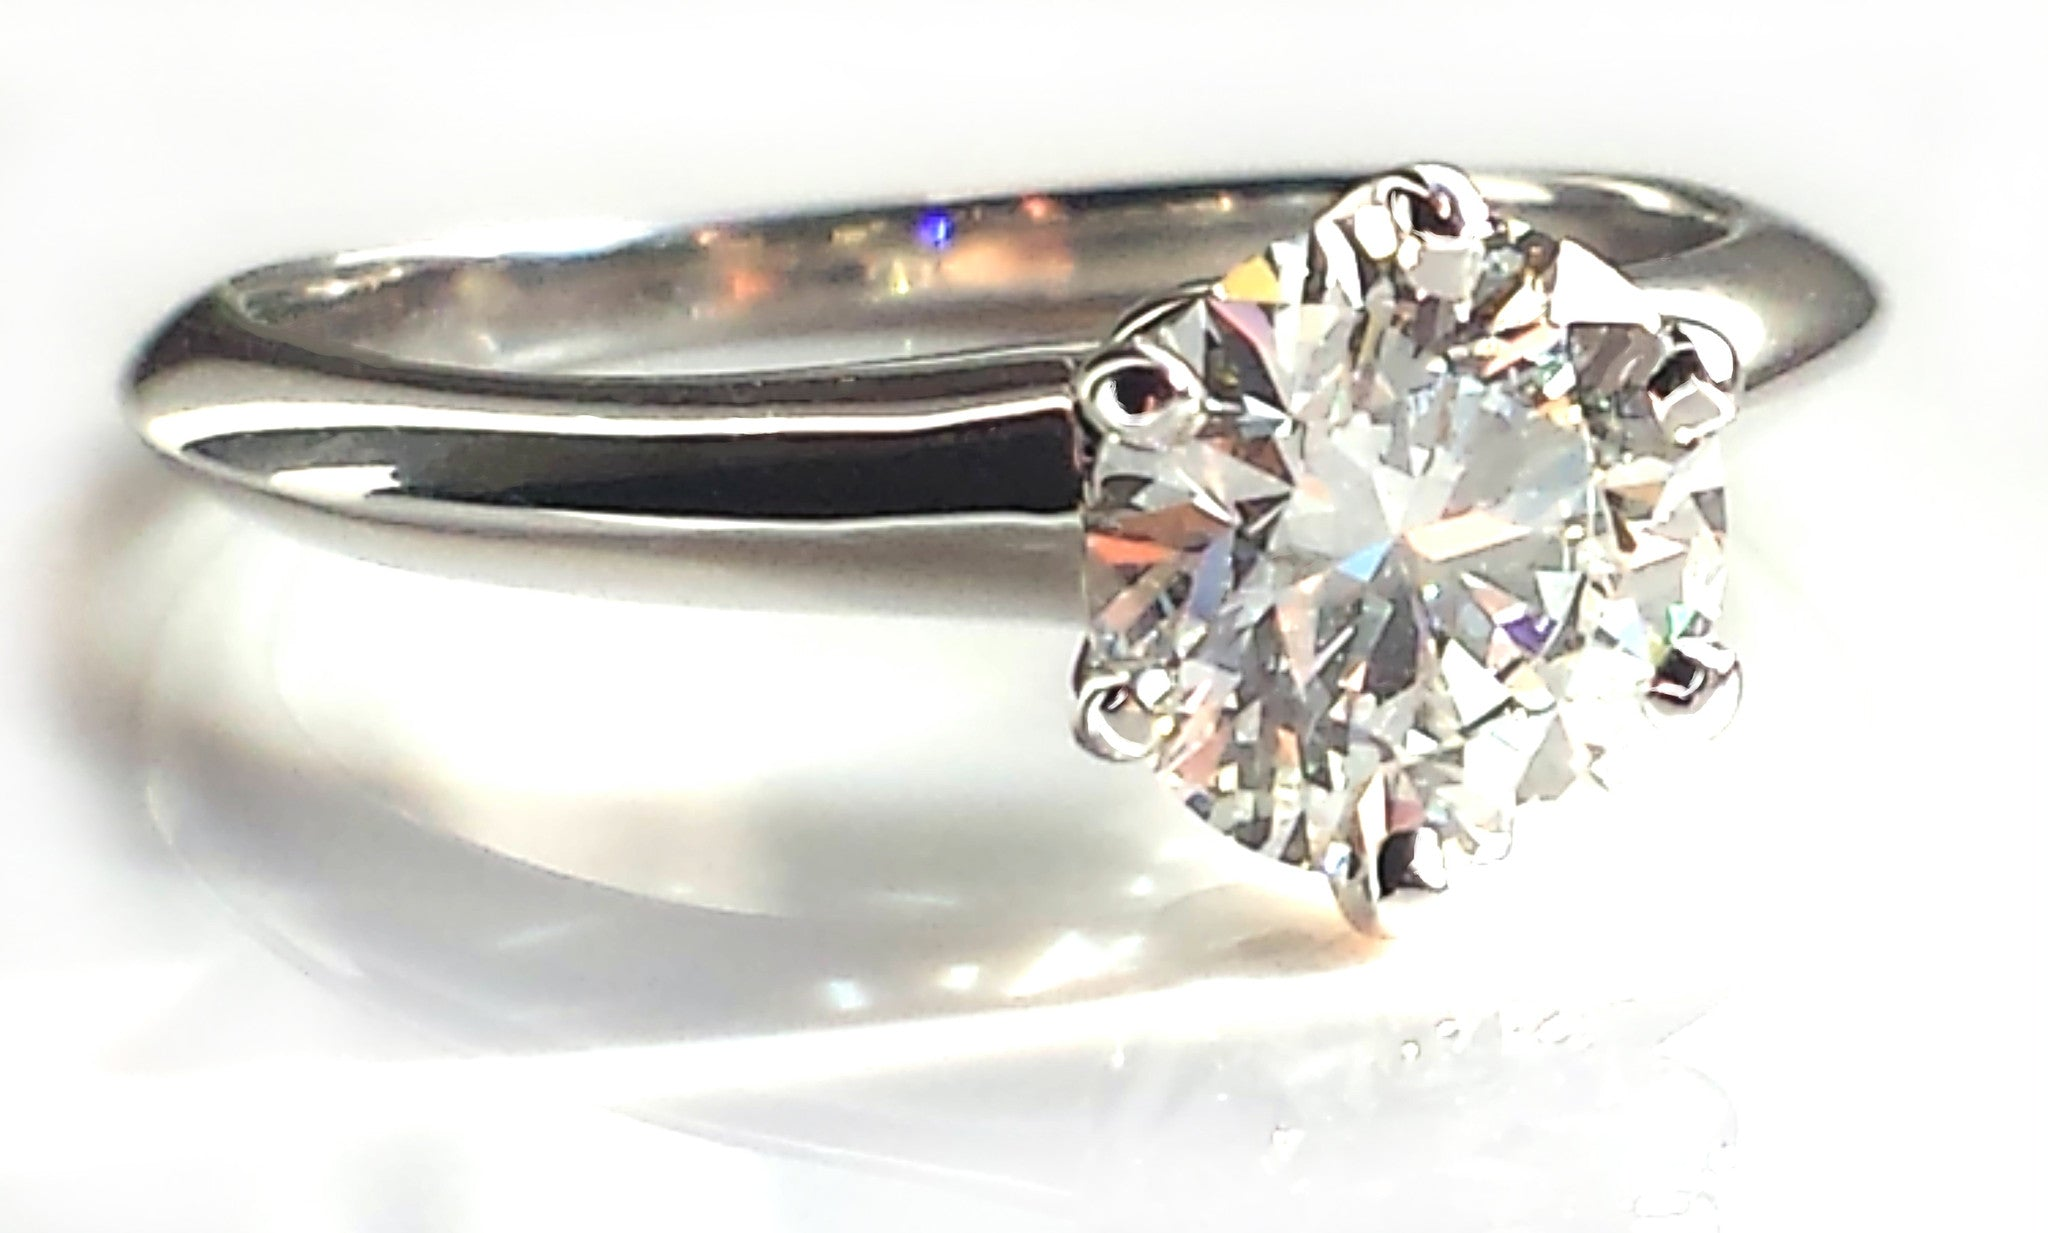 Tiffany & Co. 1.09ct G/VVS2 Round Brilliant Cut Diamond Engagement Ring